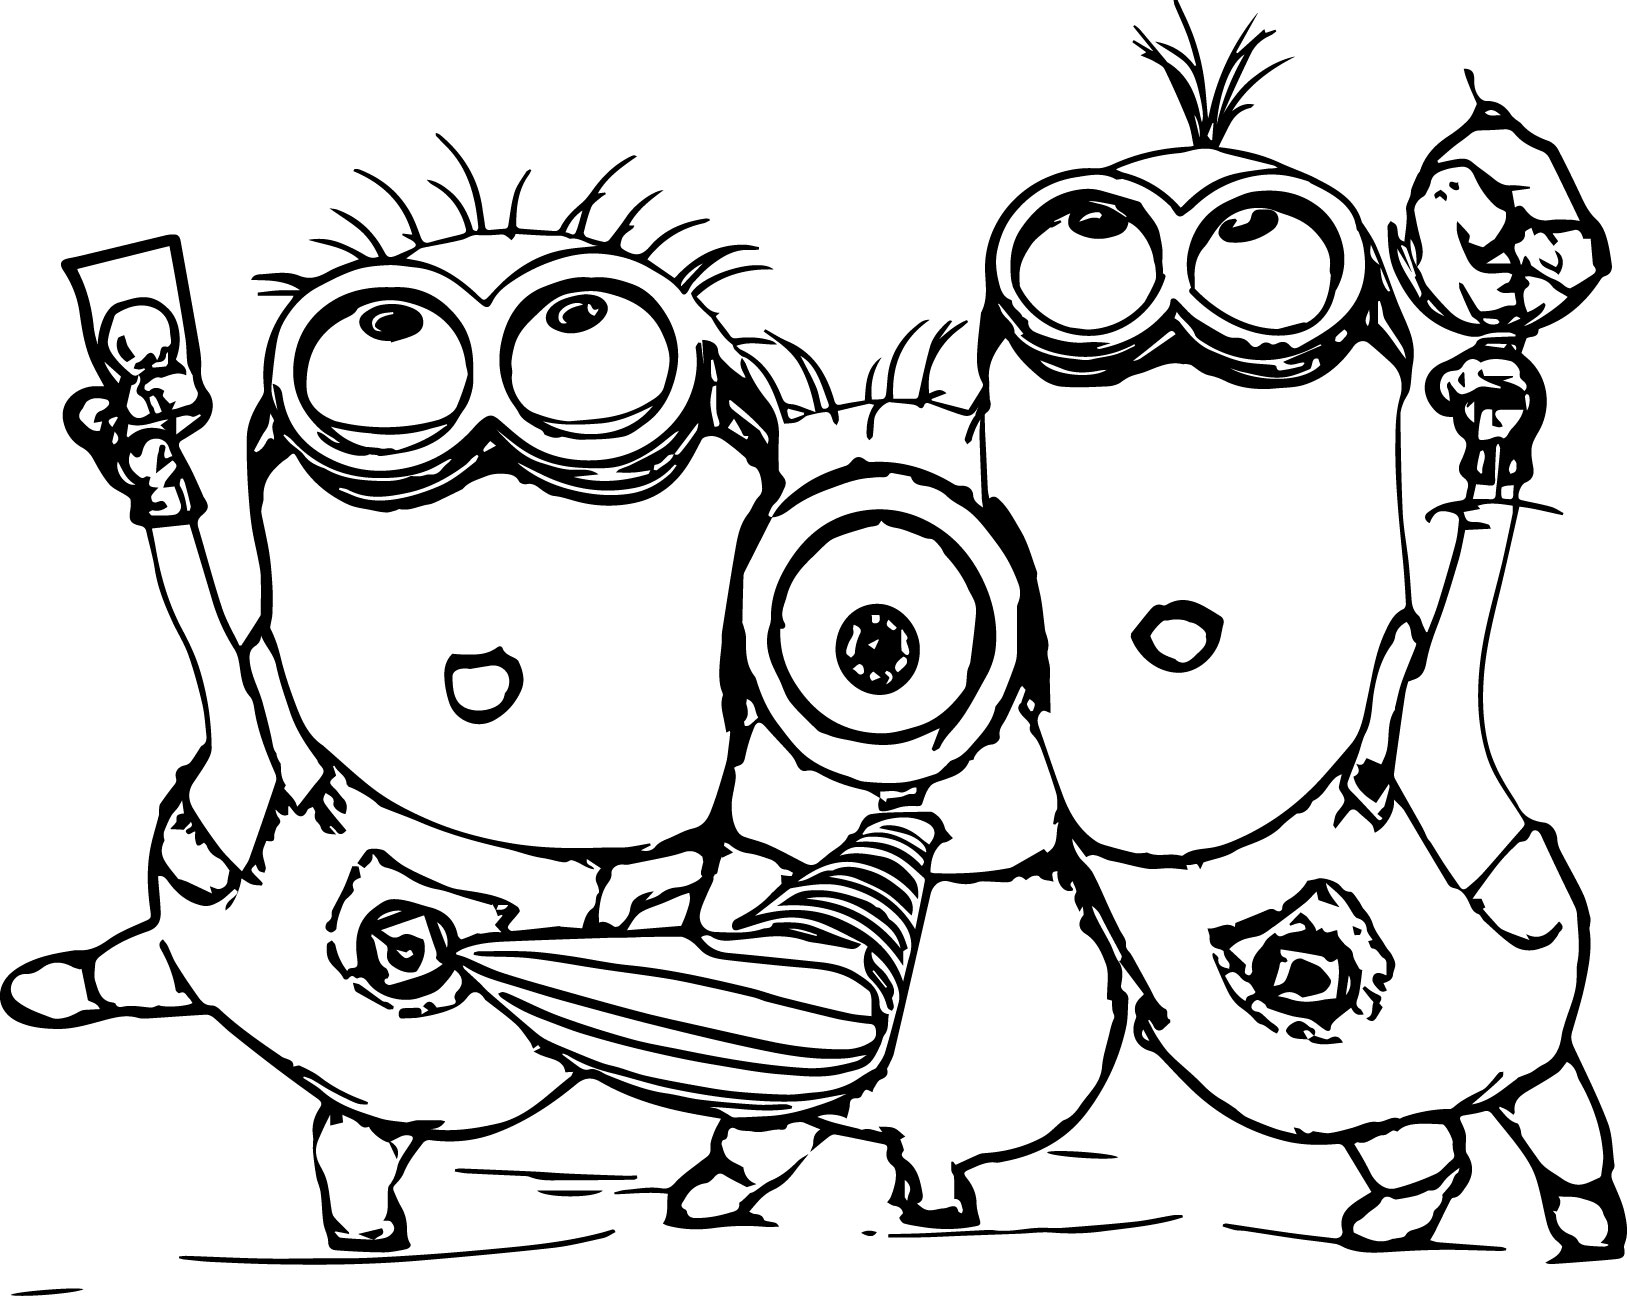 1627x1296 Bob The Minion Coloring Pages Printable